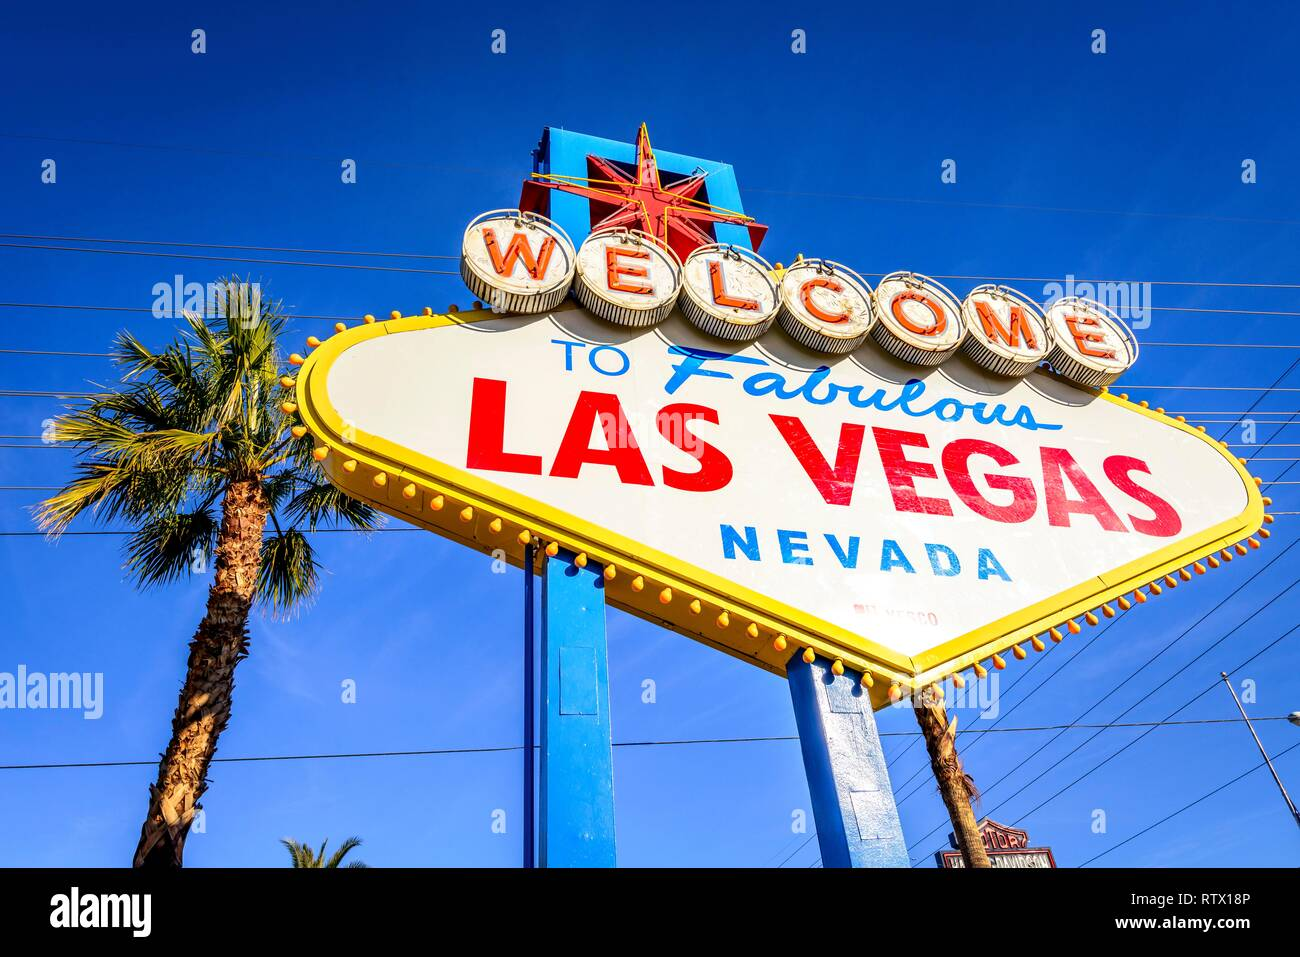 Welcome to Fabulous Las Vegas, front of the Las Vegas Welcome sign, Las Vegas Strip, Las Vegas, Nevada, USA Stock Photo